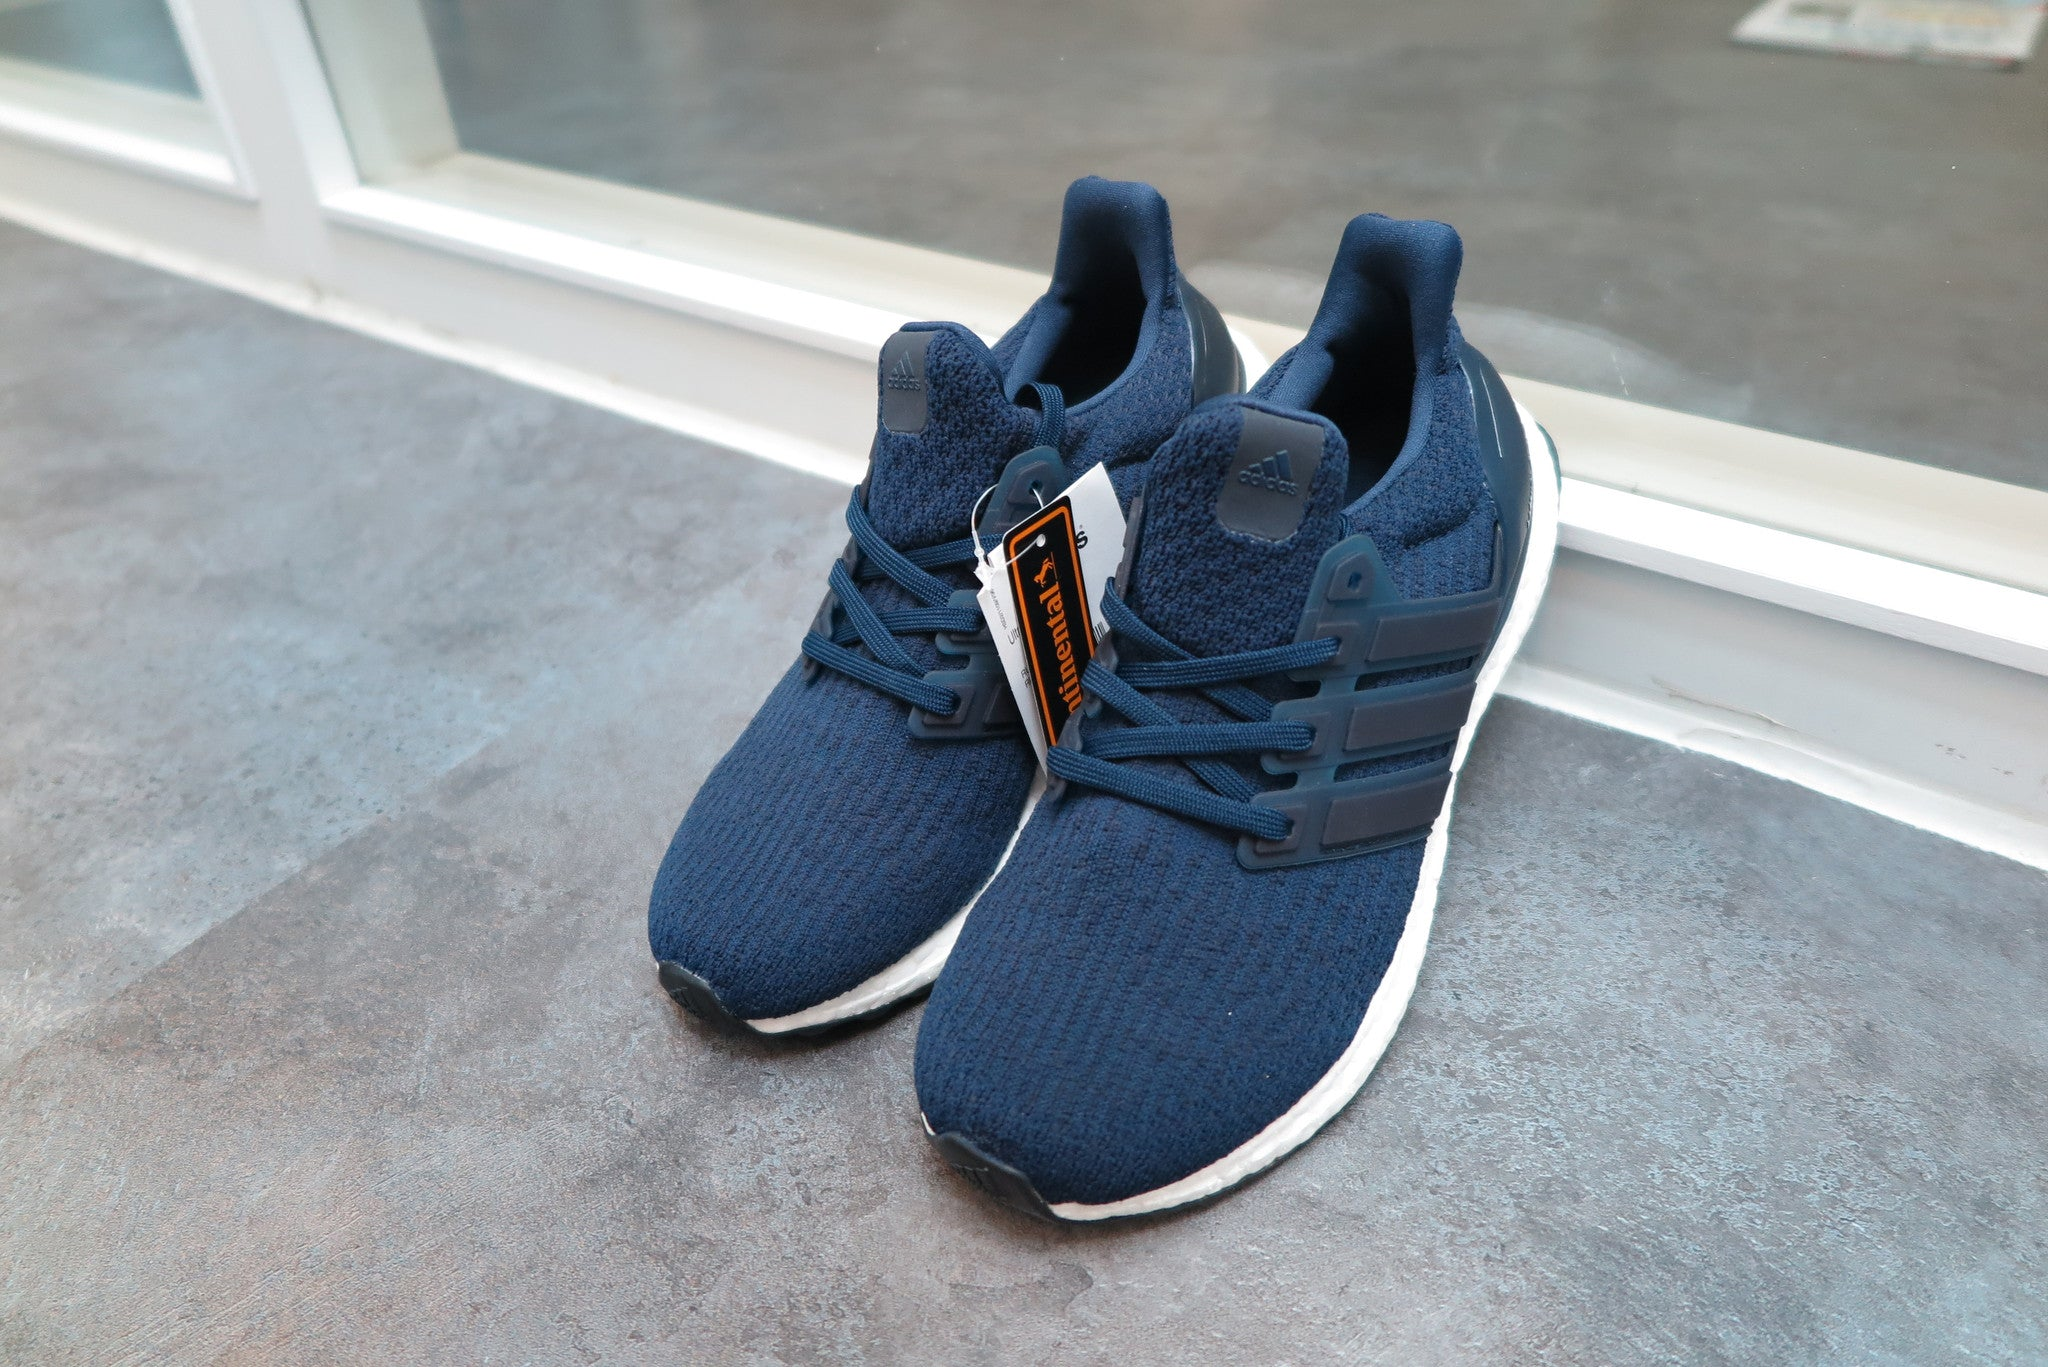 official photos fd65a d2389 adidas Ultra Boost 3.0 - Collegiate NavyNight Navy BA8843-Preorder Item- ultra  boost 3.0 night navy IMG37592048x2048 ...